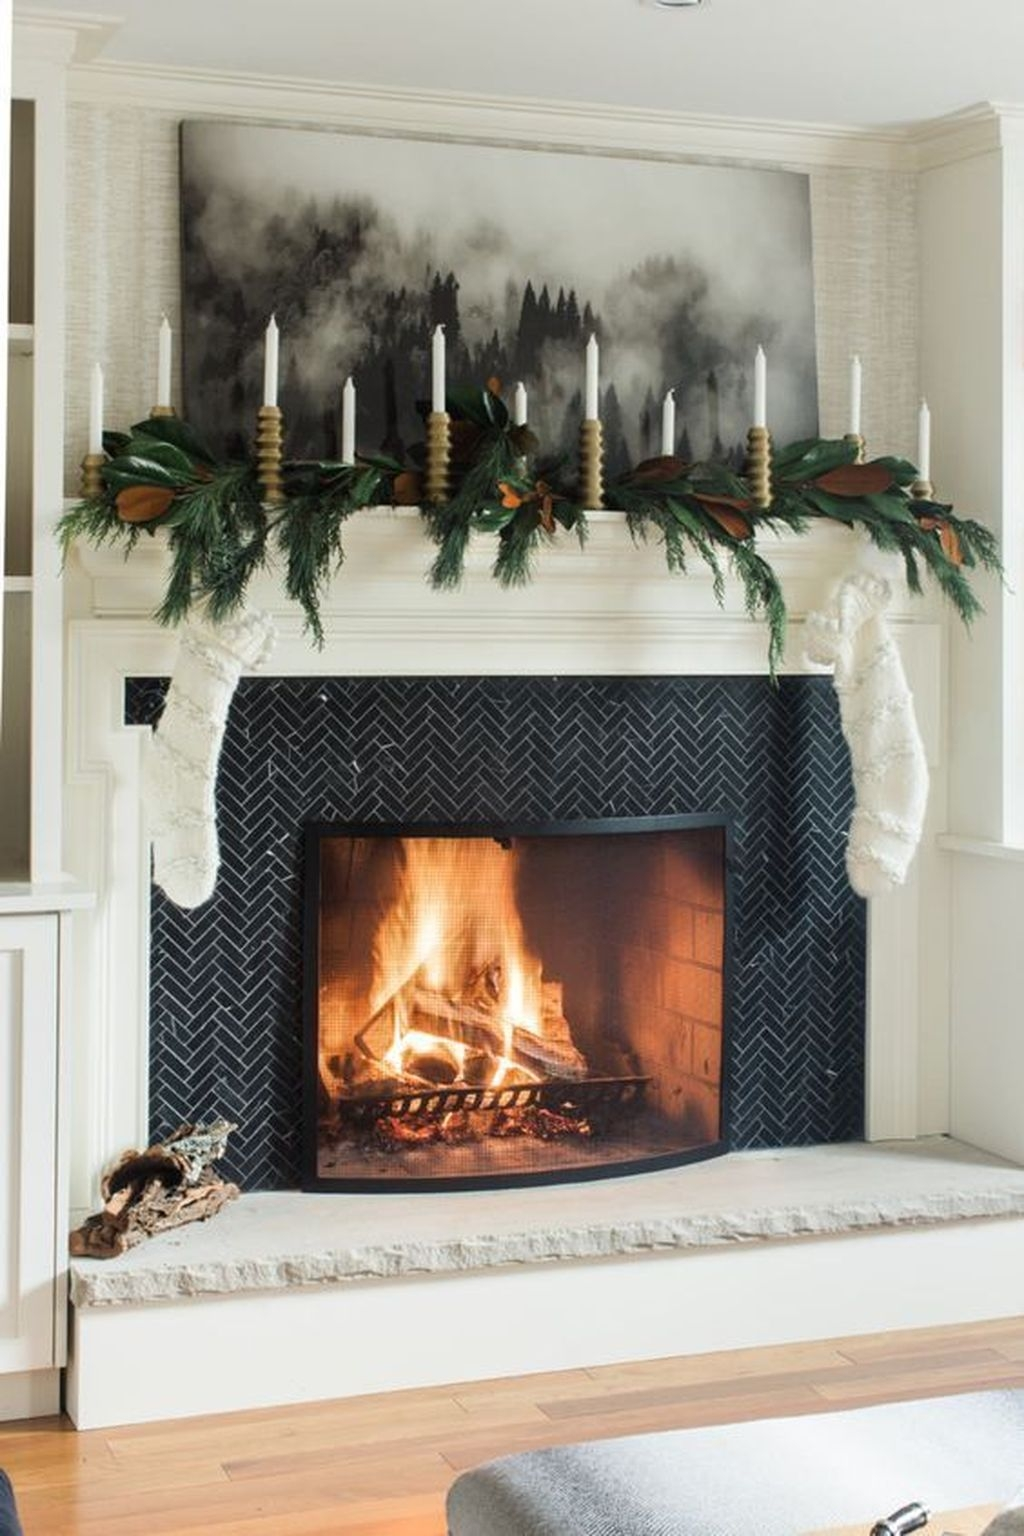 The Best Christmas Fireplace Decoration For Any Home Model 46